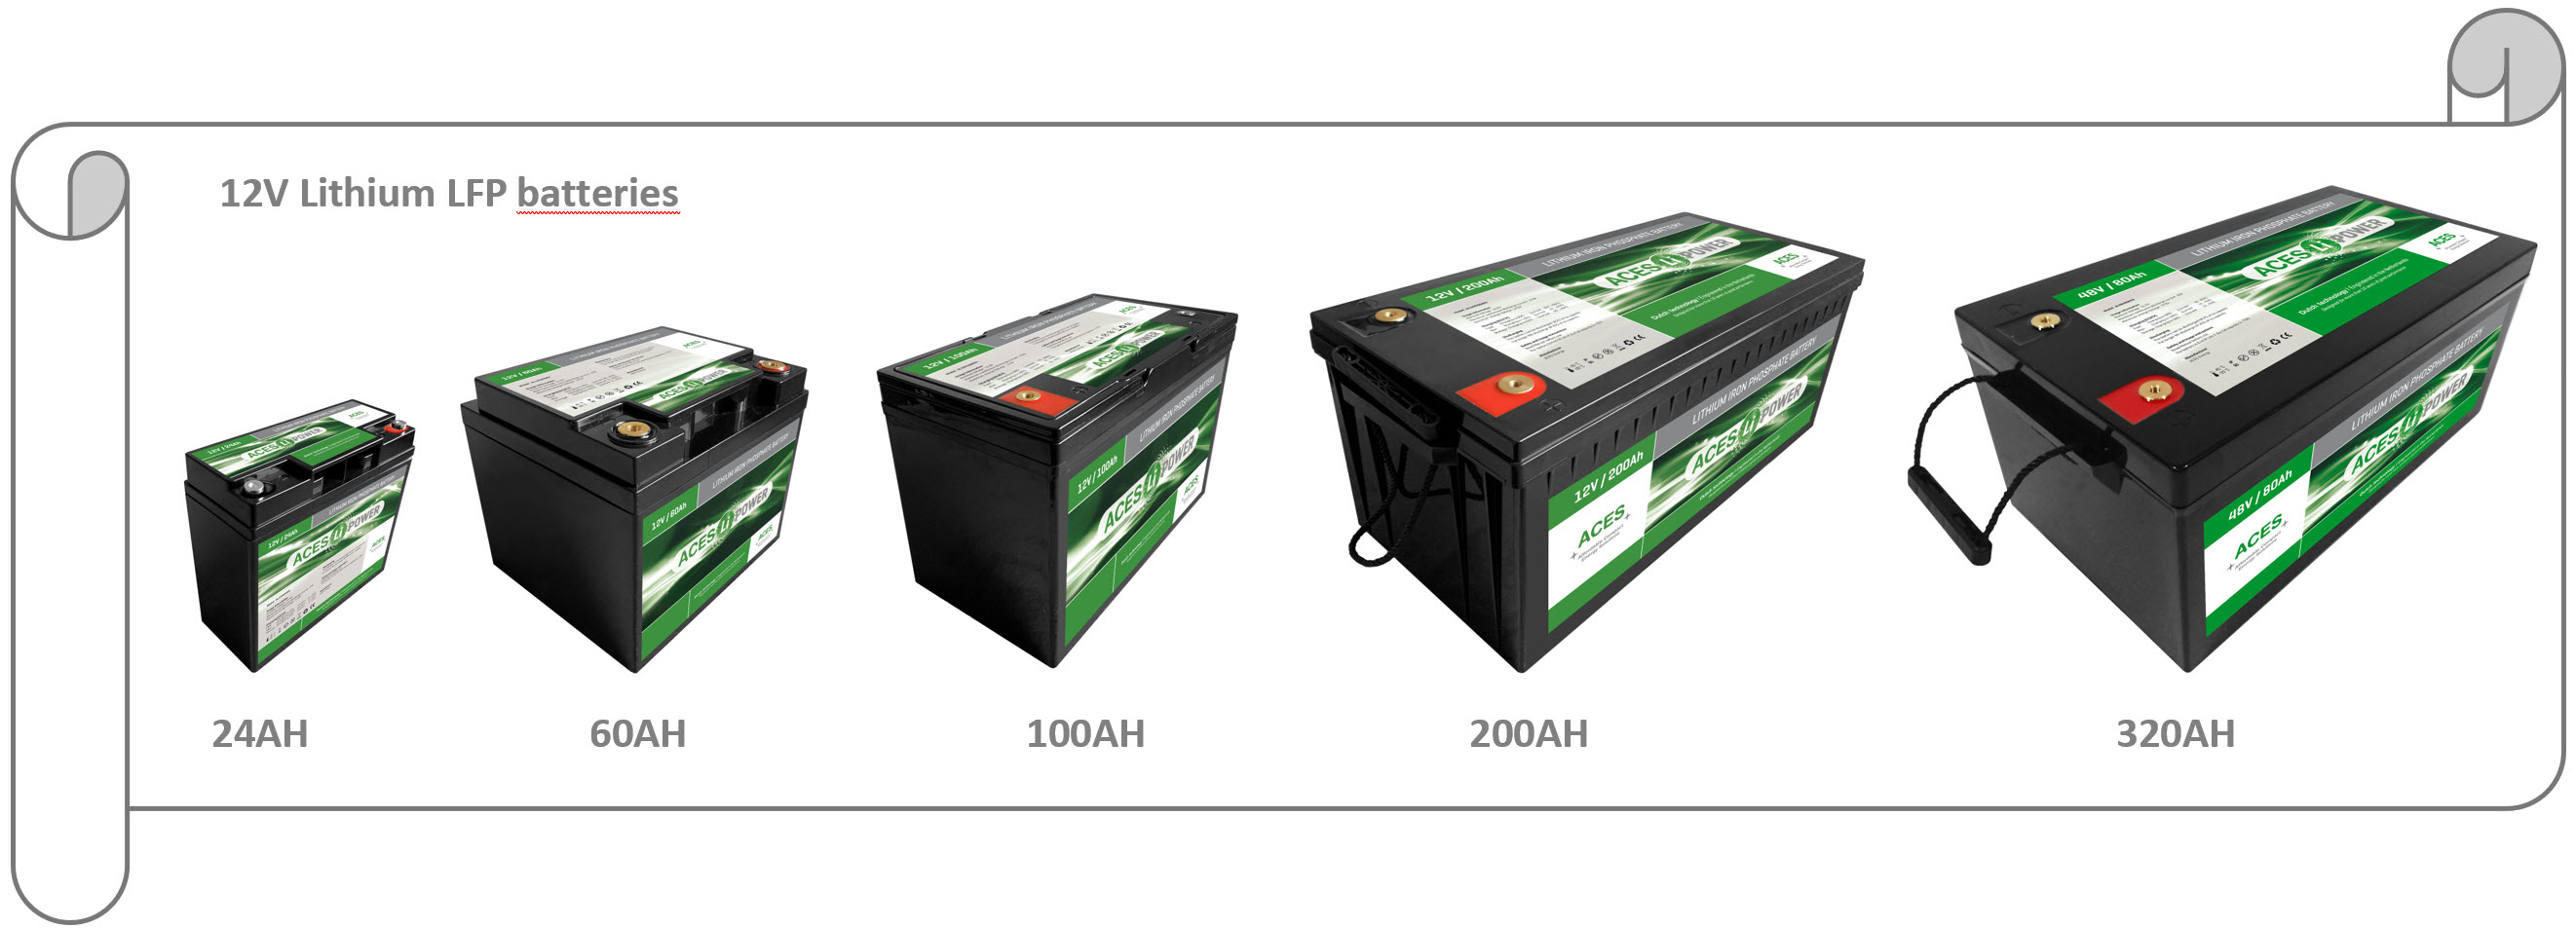 ACES Energy introduces new line of Lithium batteries in ABS case